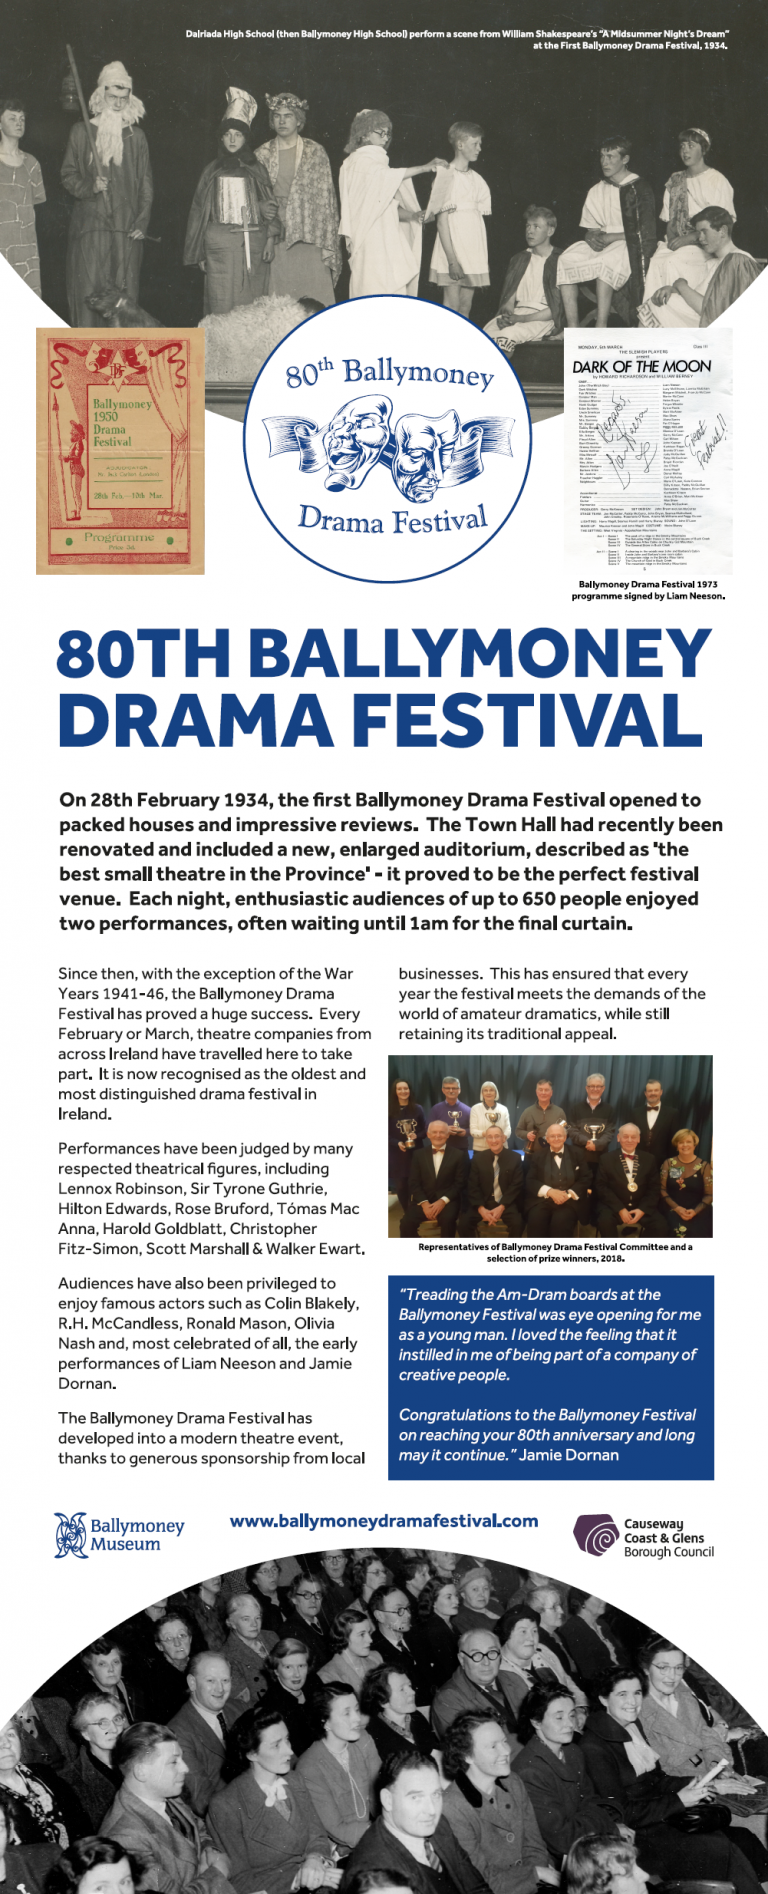 80th Ballymoney Drama Festival